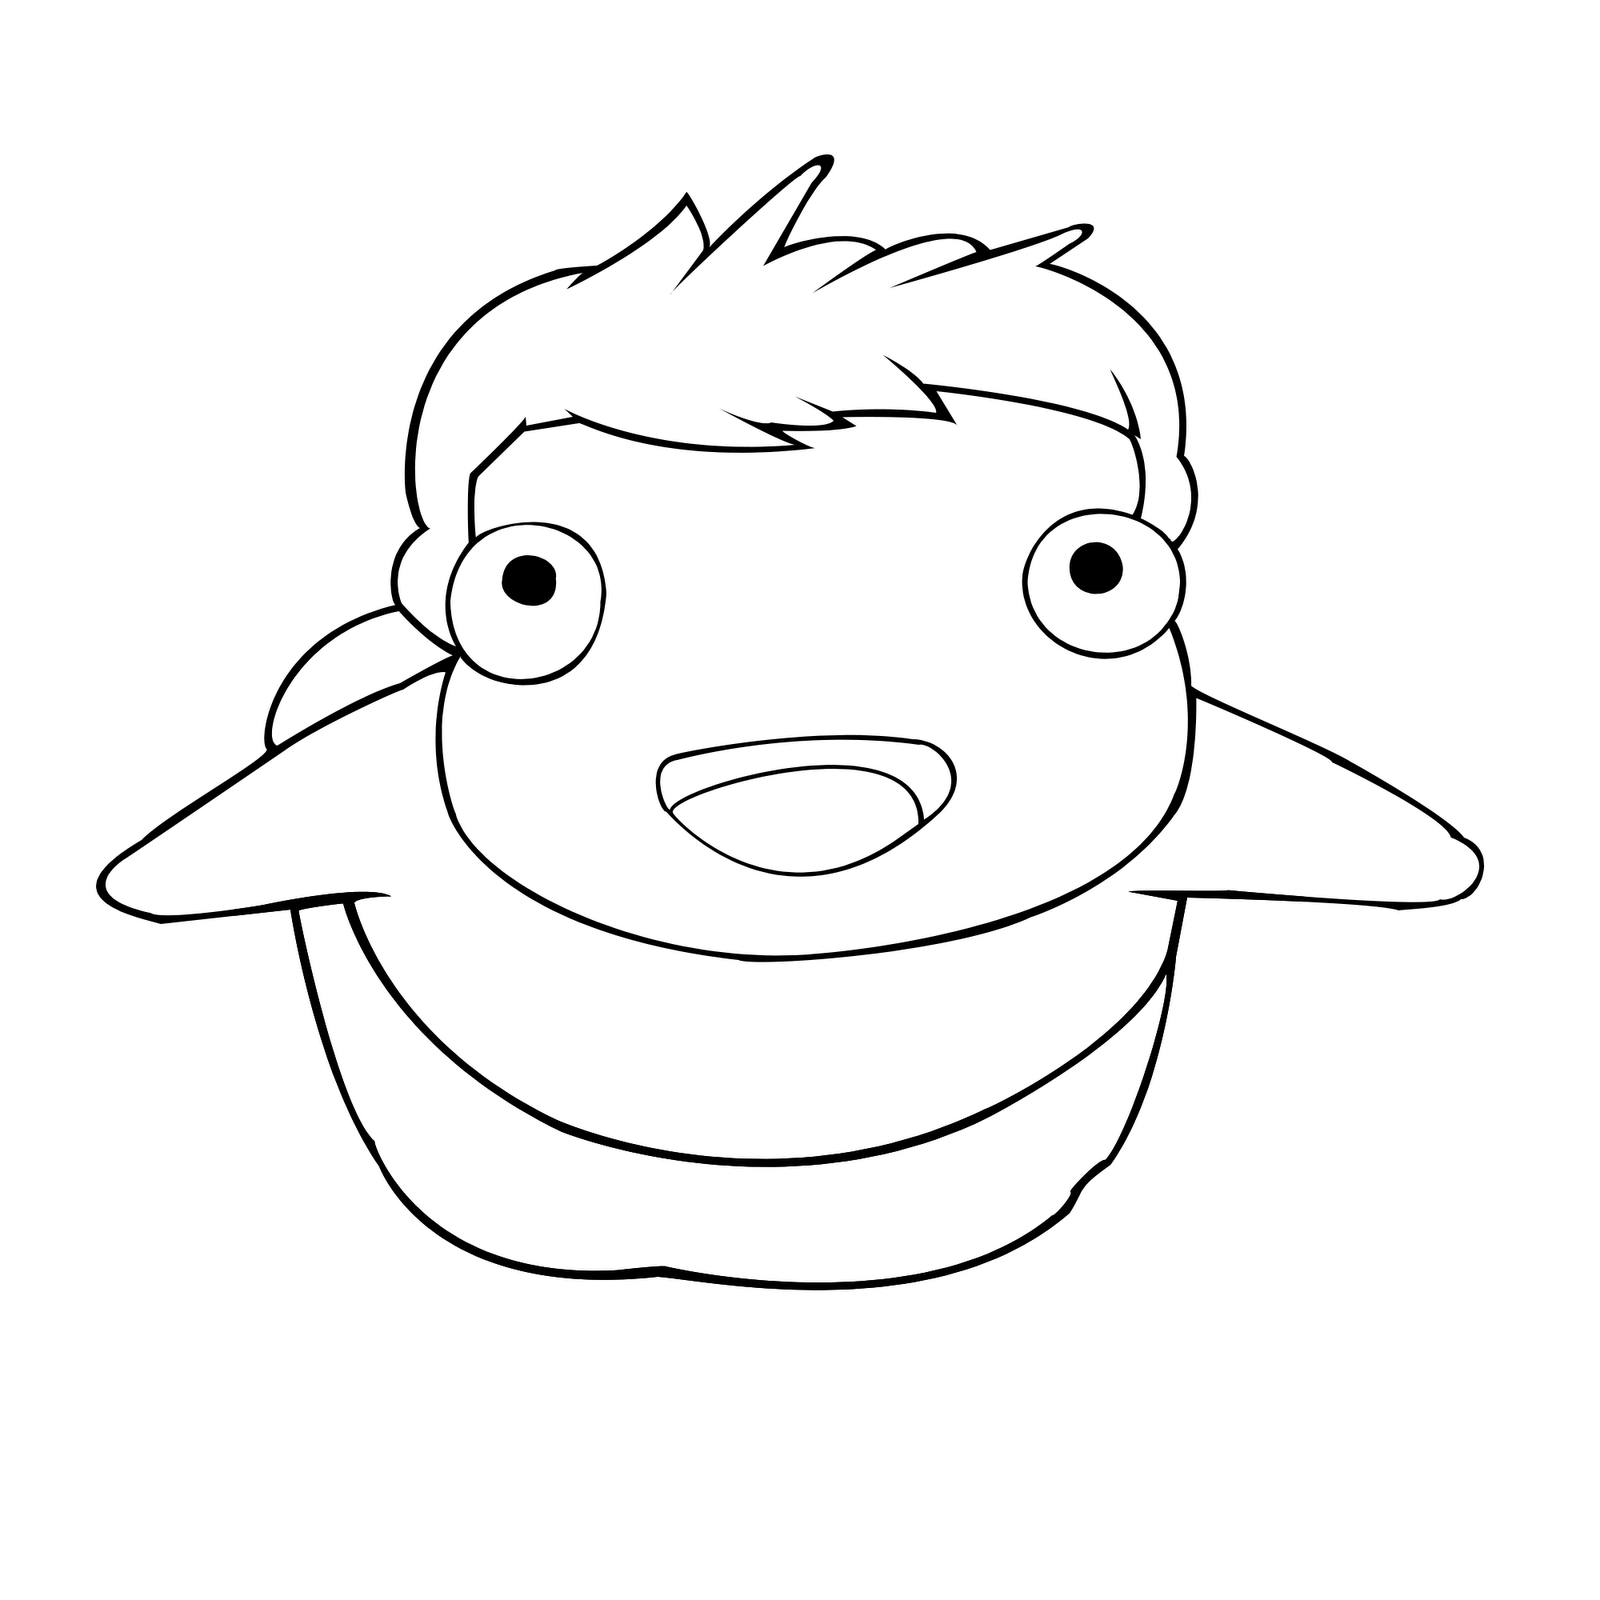 Uncategorized Ponyo Coloring Pages coloring pages of ponyo by oliver free printables oliver